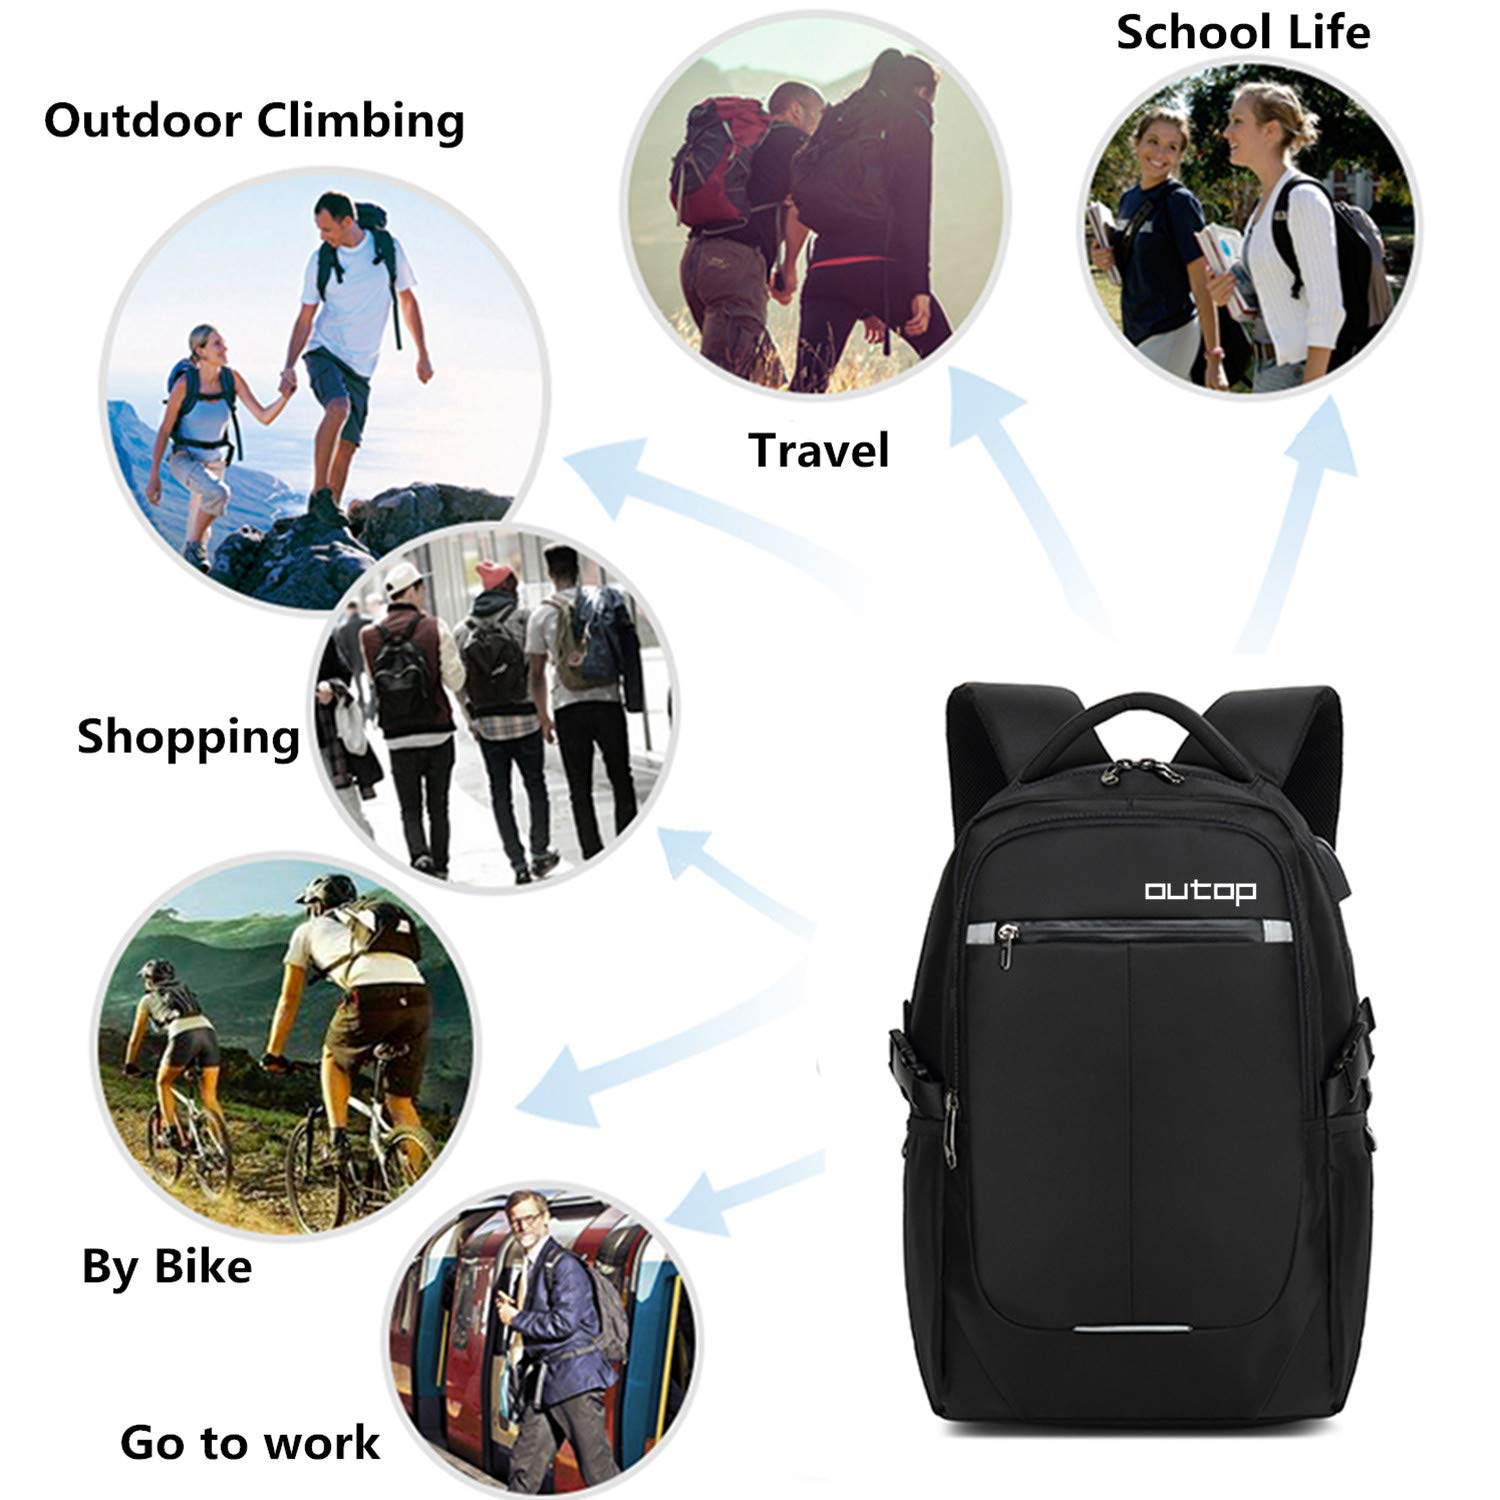 Slim Business Backpack USB Charging Port Headphone Interface 15.6-17 Notebook OUTOP Travel Computer Bag Women /& Men Laptop Backpack Black Anti Theft Water Resistant College